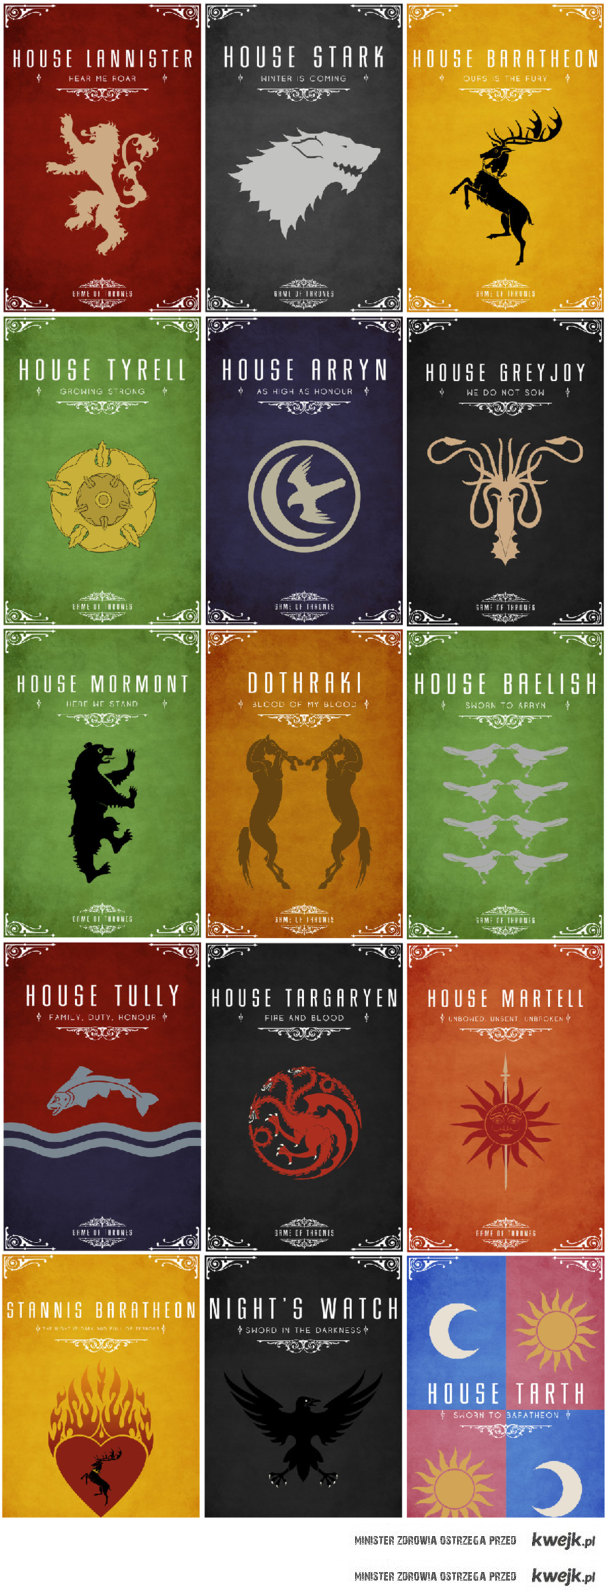 houses in game of thrones